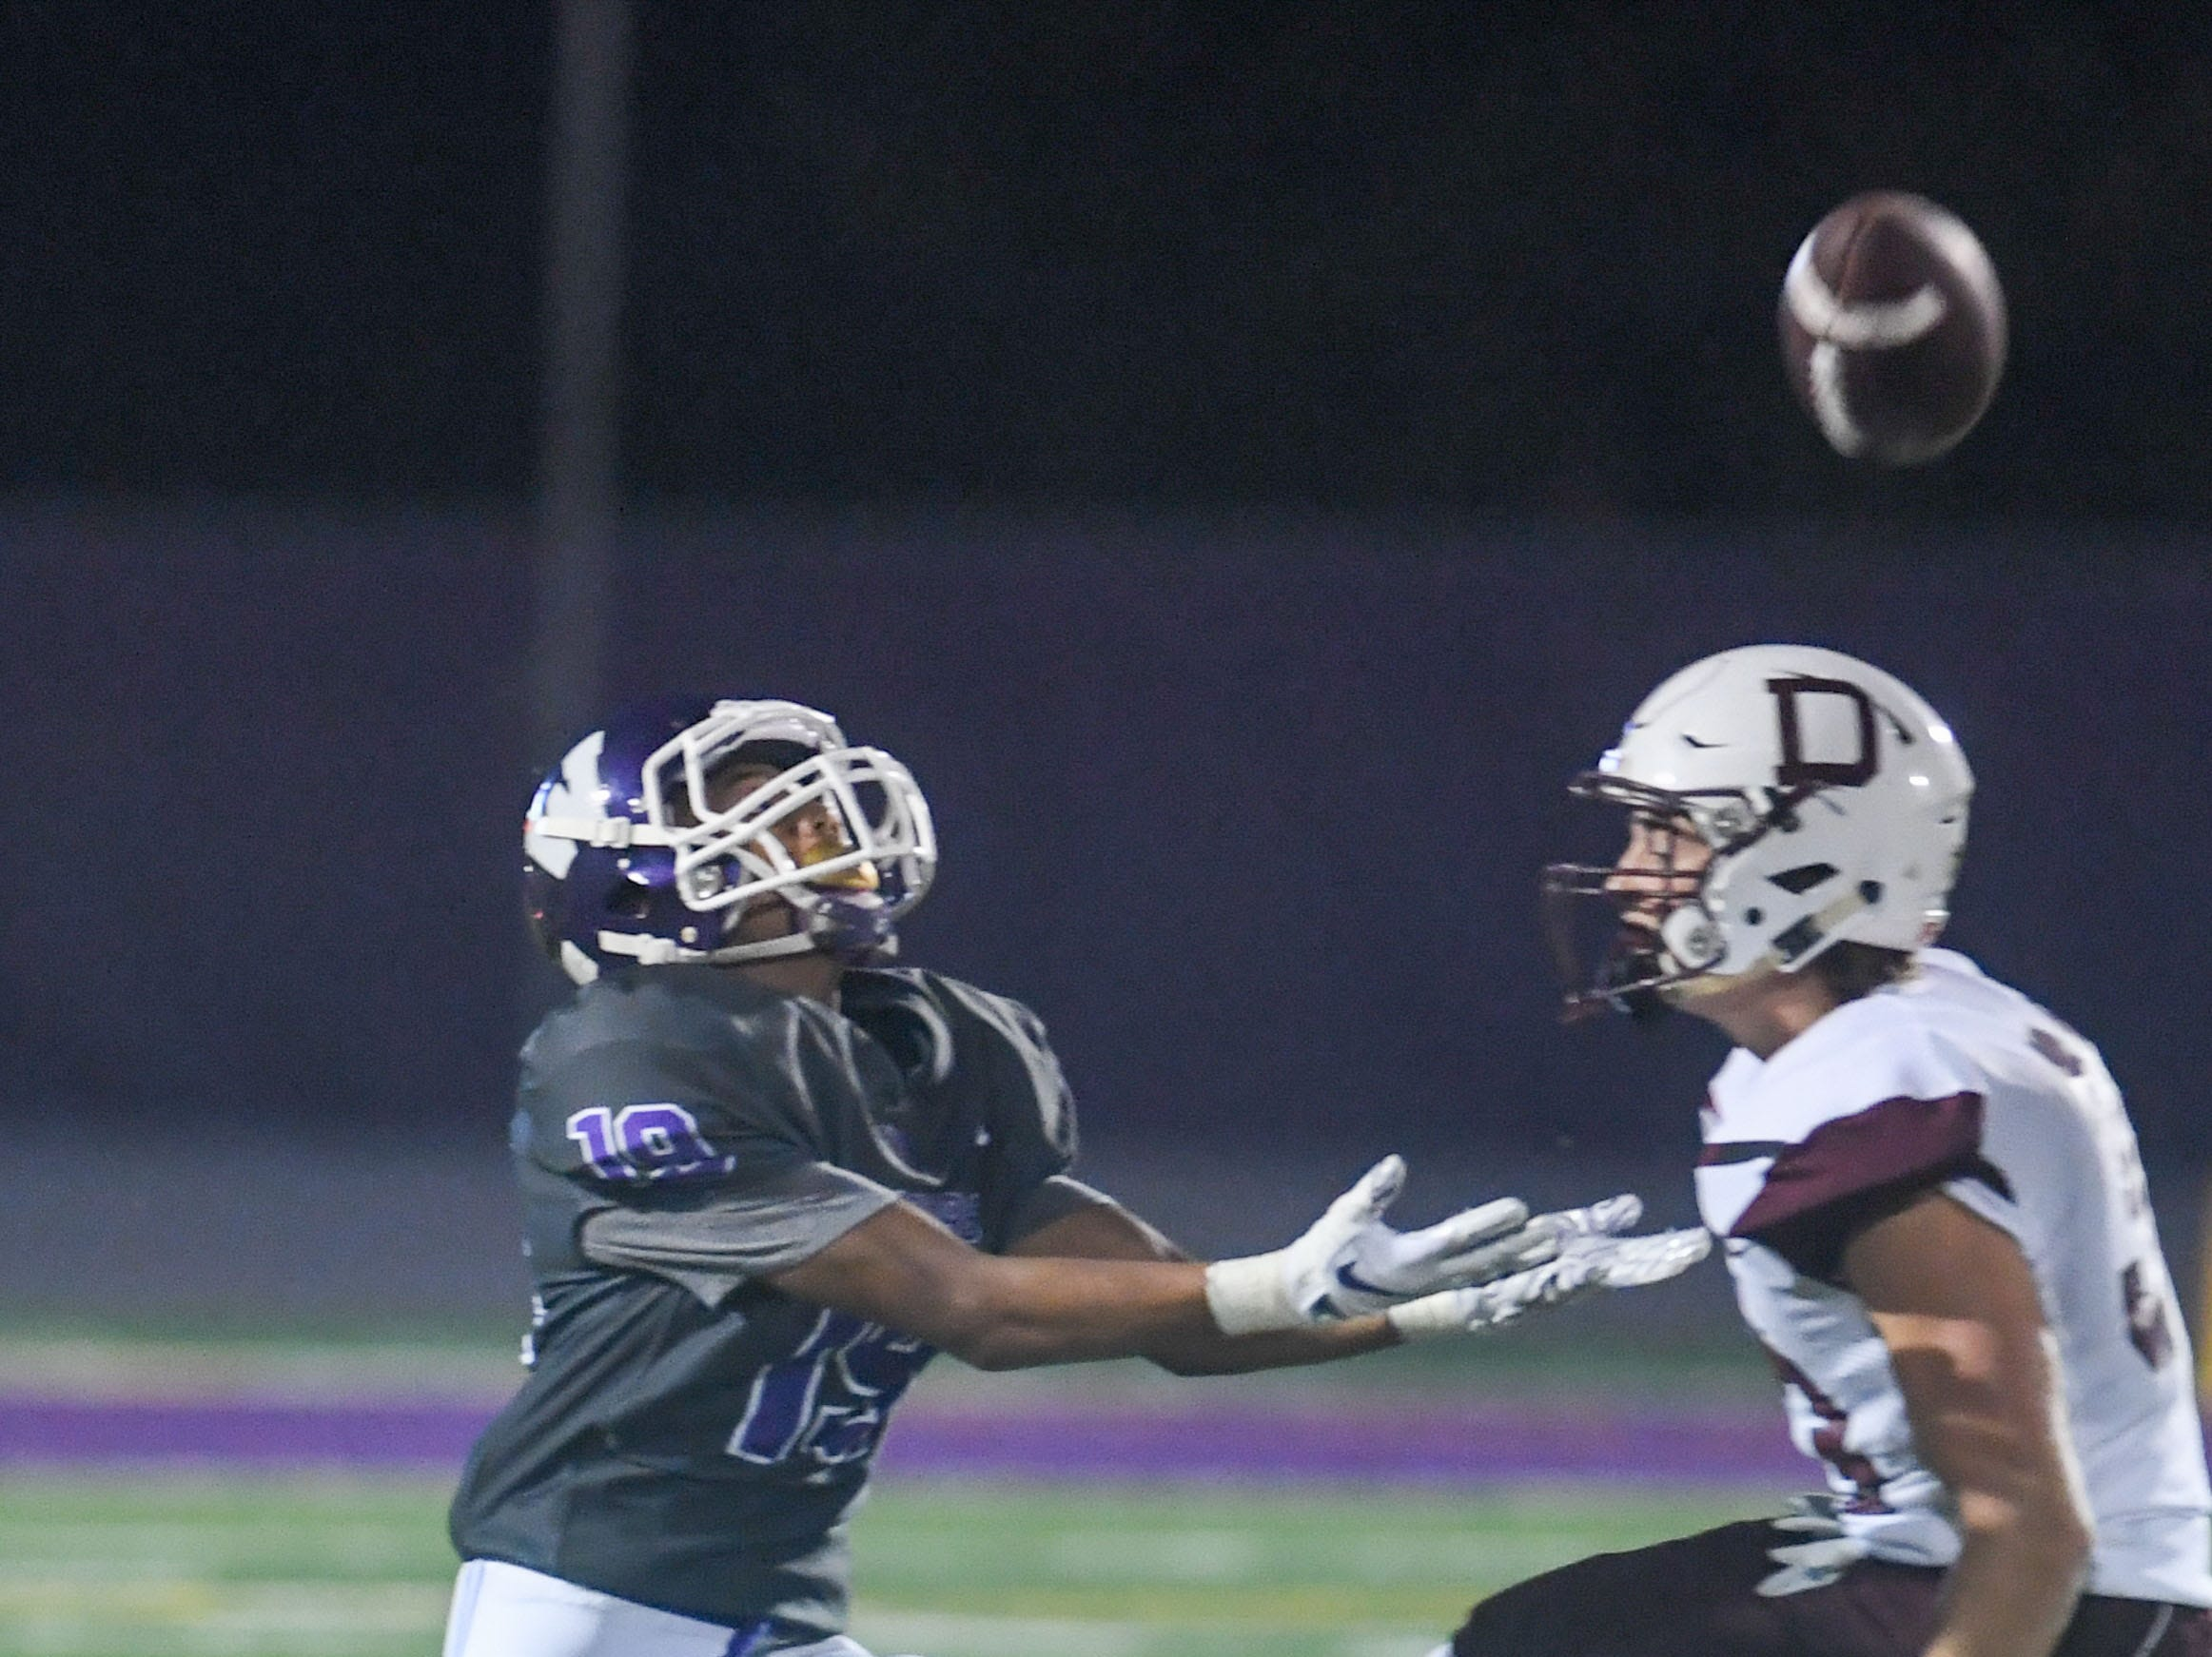 Waukee punt returner Zach Gaines (19) goes in for a catch on Friday, August 24, 2018 during a football game between the Waukee Warriors and the Dowling Catholic Maroons at Waukee High School.